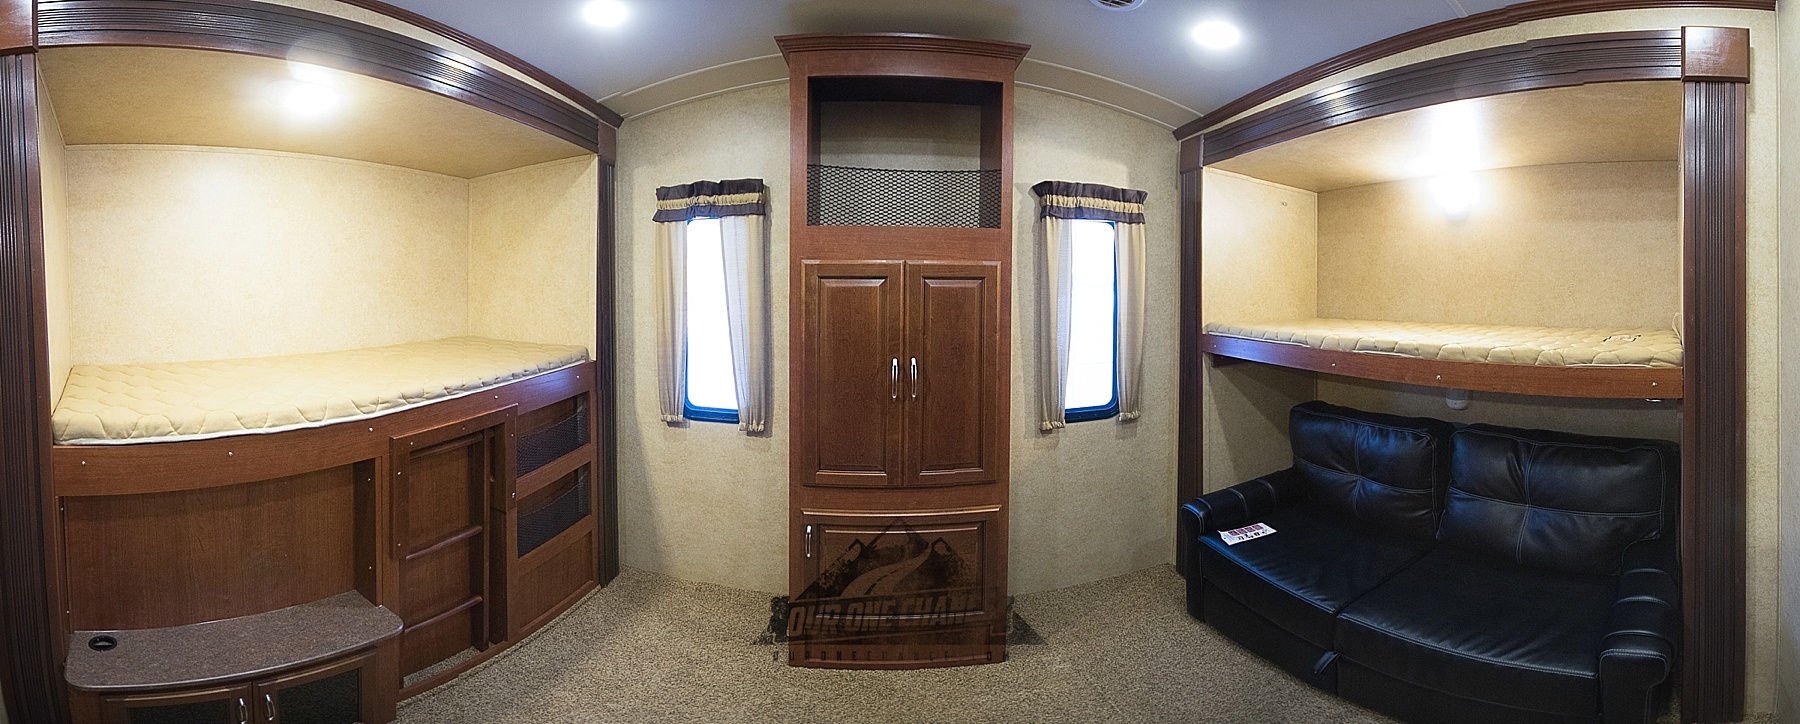 Bay Hill Fifth Wheel RV Bunk House Remodel_0003